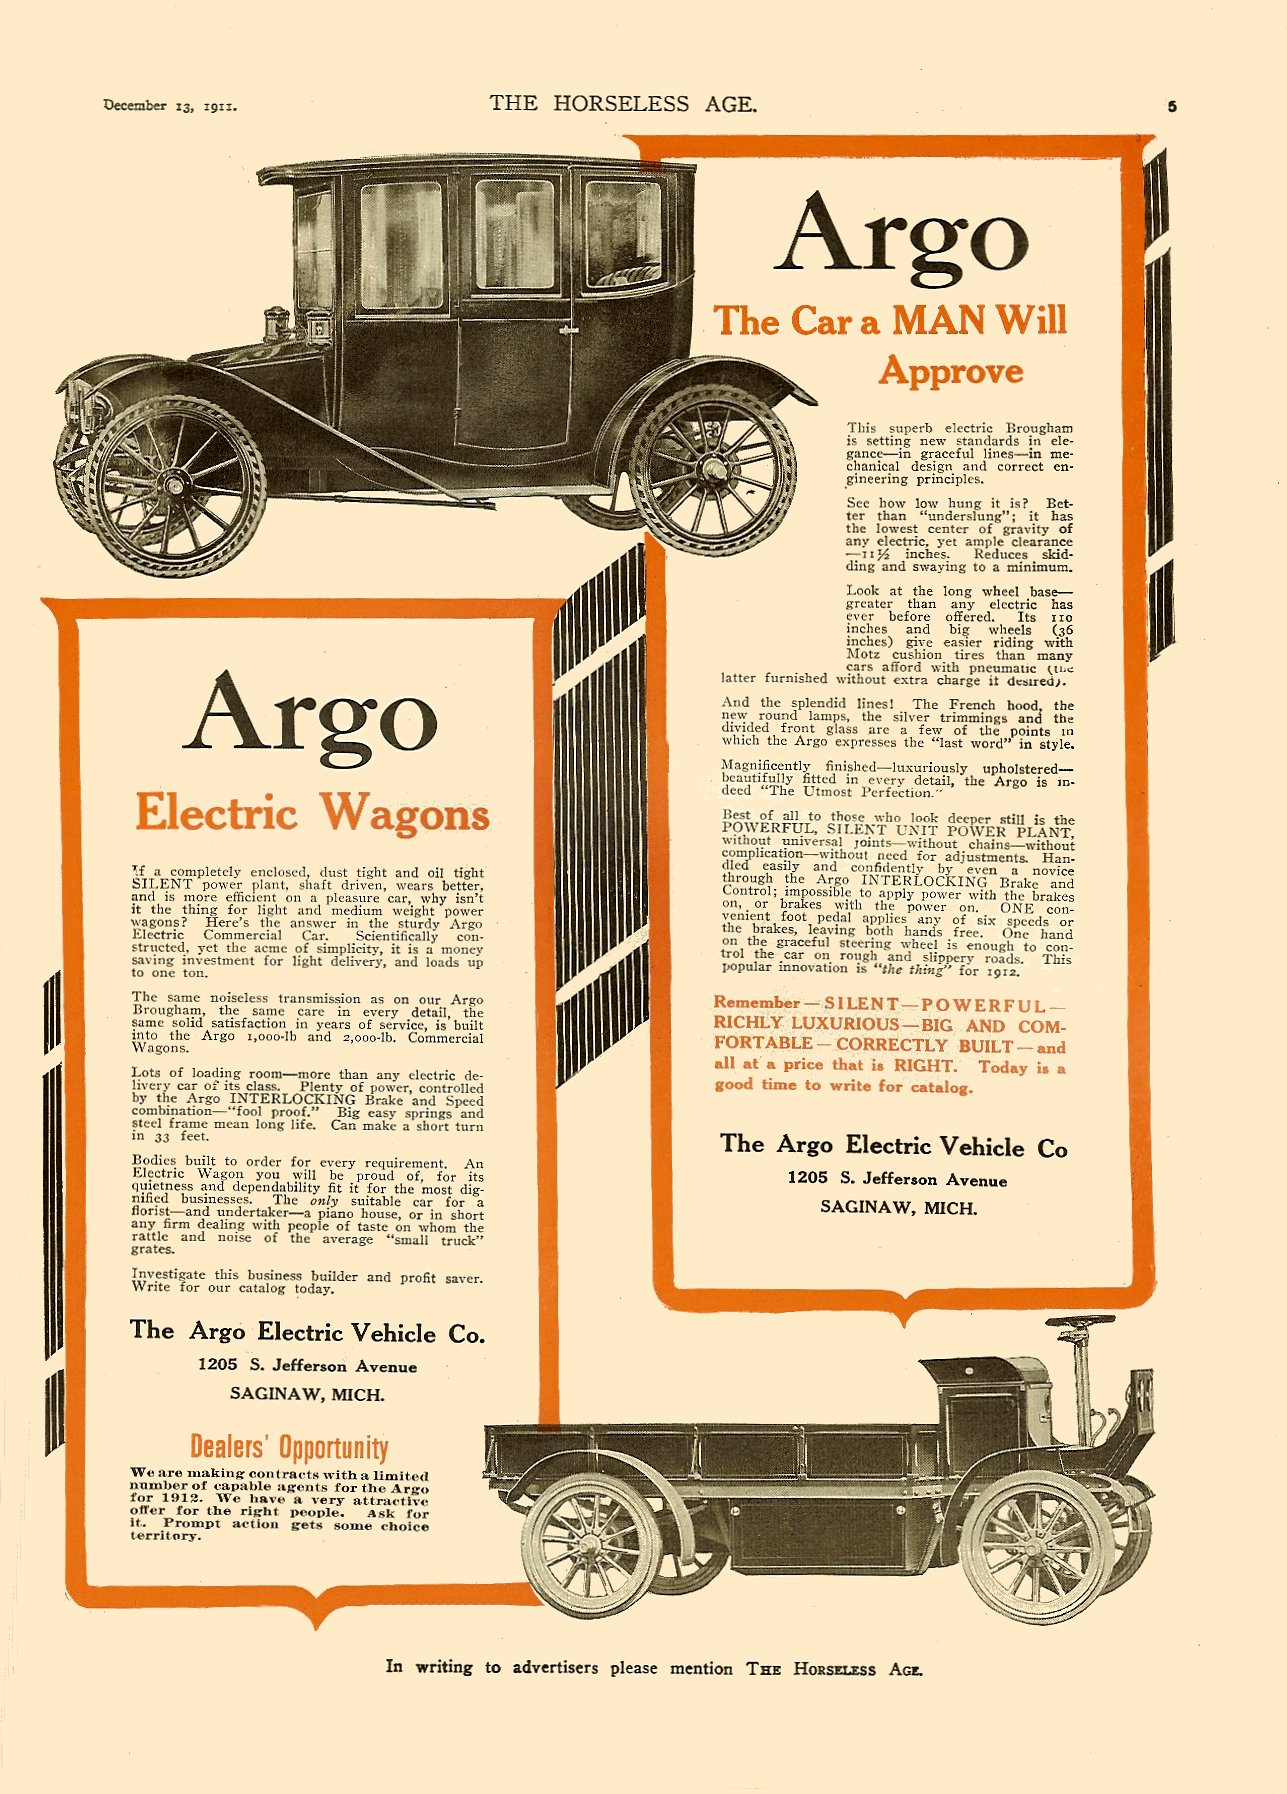 1911 12 13 Argo Electric Wagons The Argo Electric Vehicle Co. Saginaw, MICH THE HORSELESS AGE Vol. 28, No. 24 December 13, 1911 9″x12″ page 5